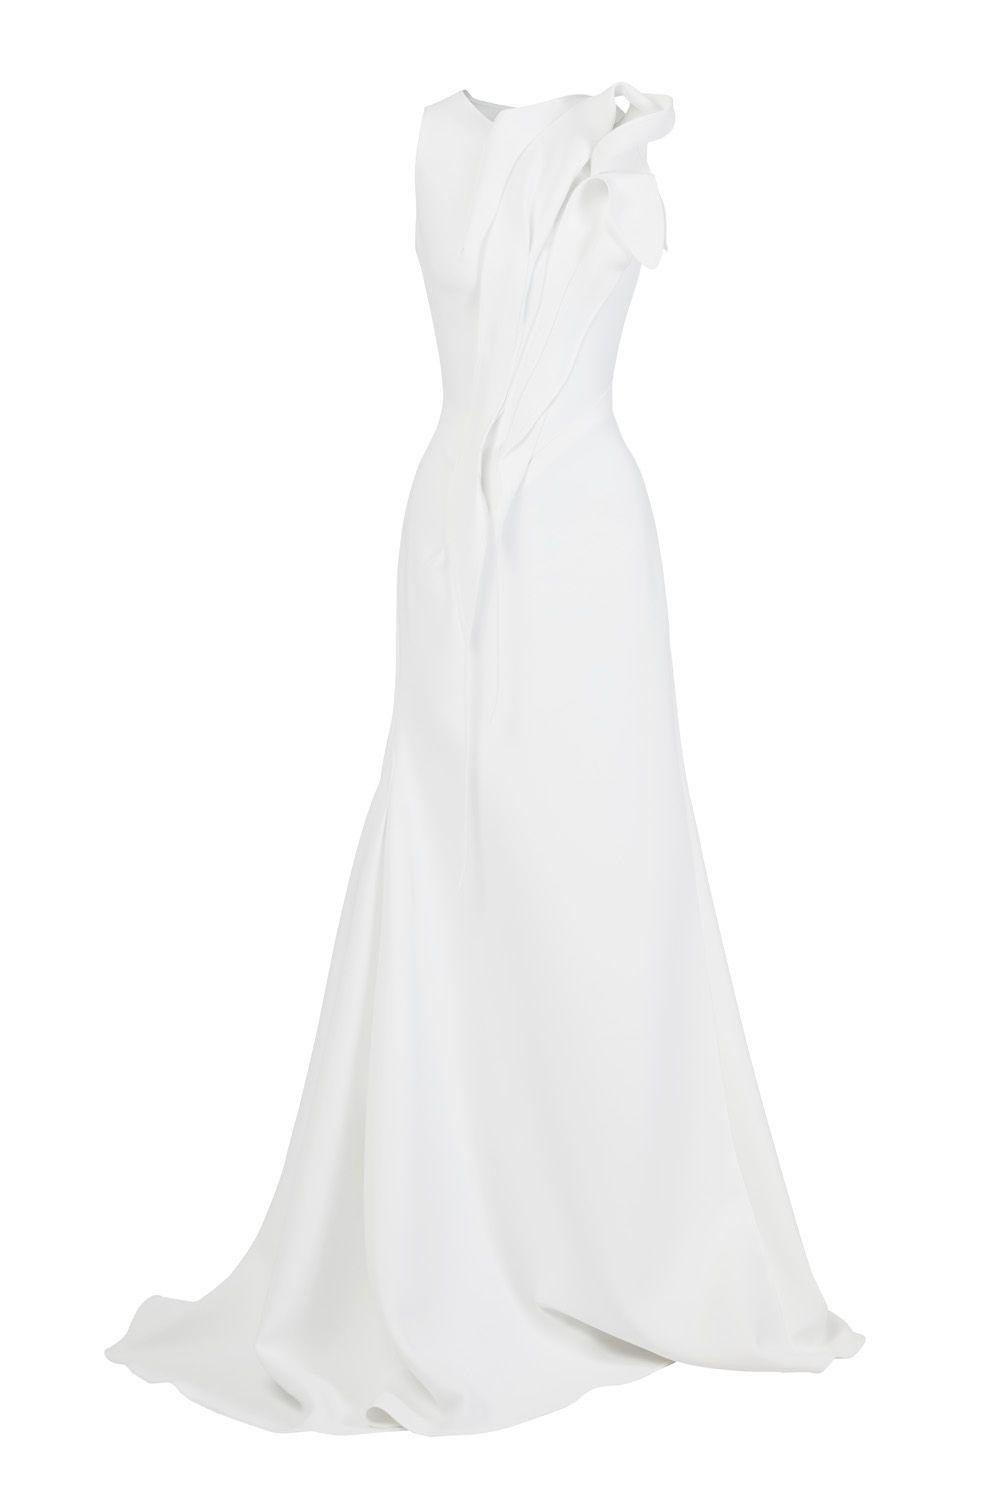 Avow Gown 8